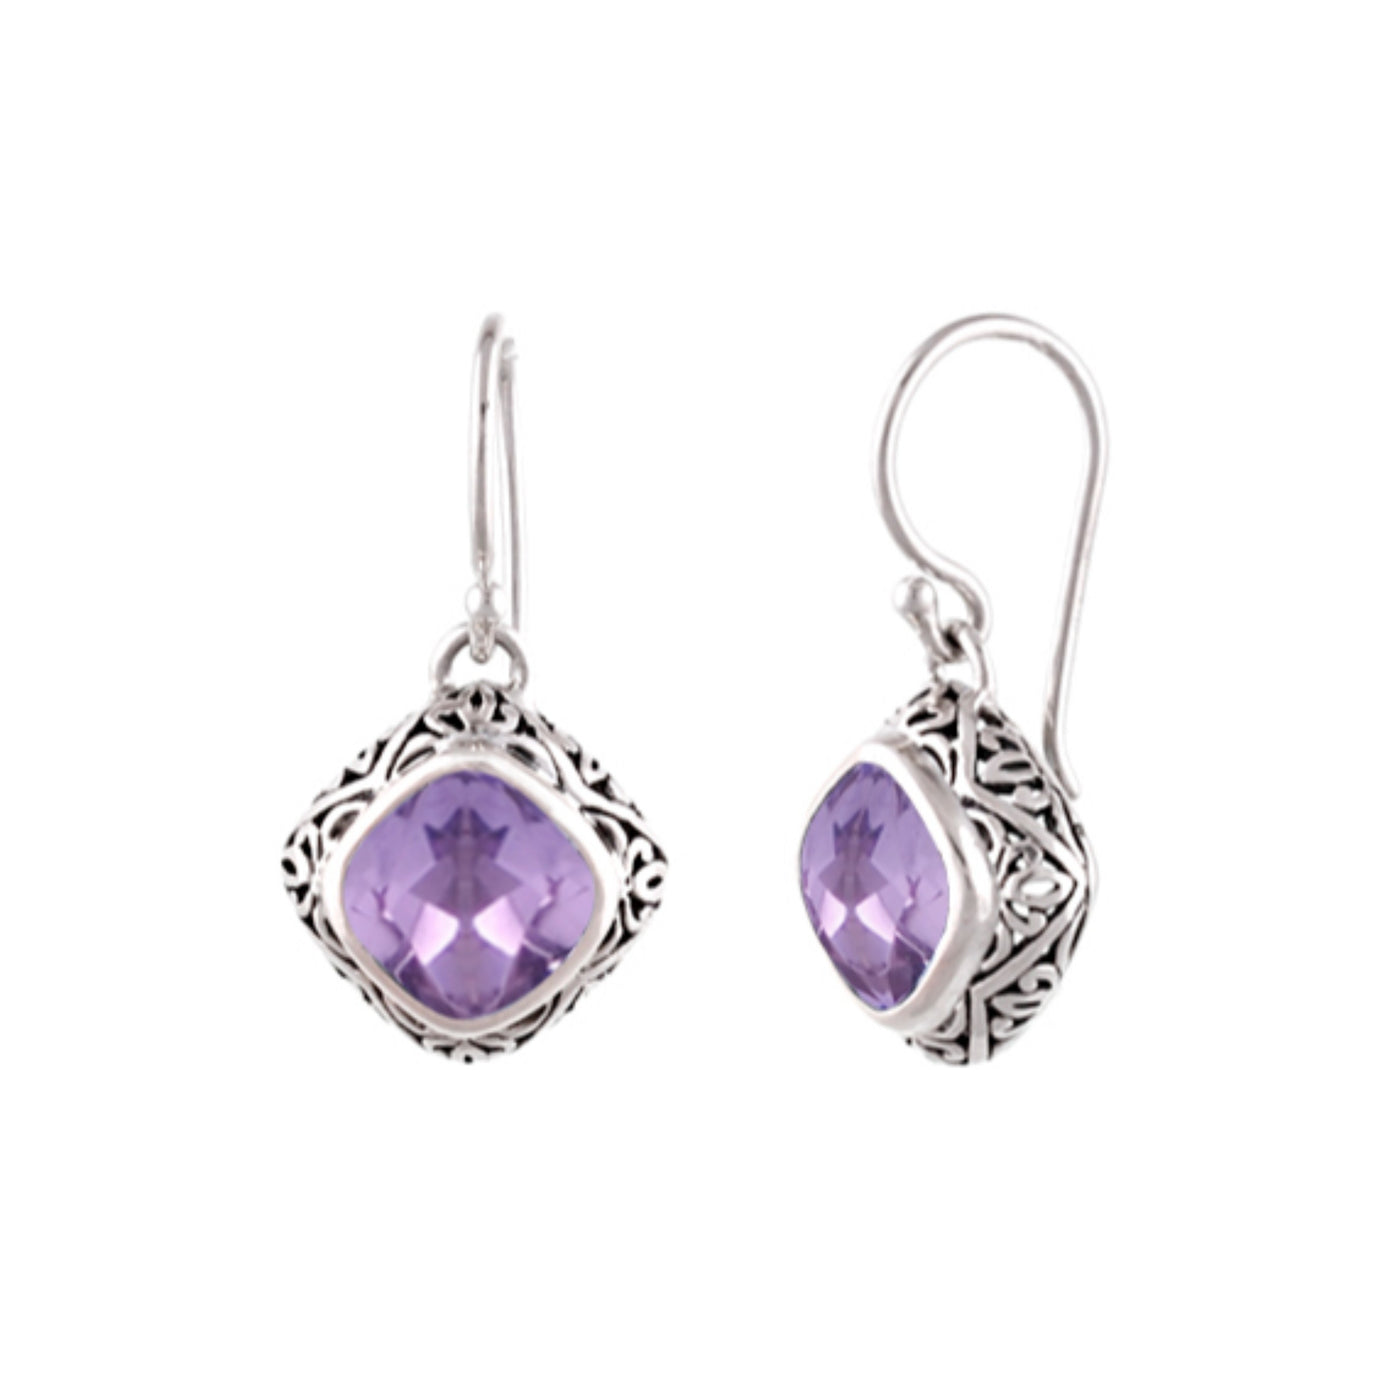 JD E55107AMY ORNATE AMETHYST DROP EARRINGS